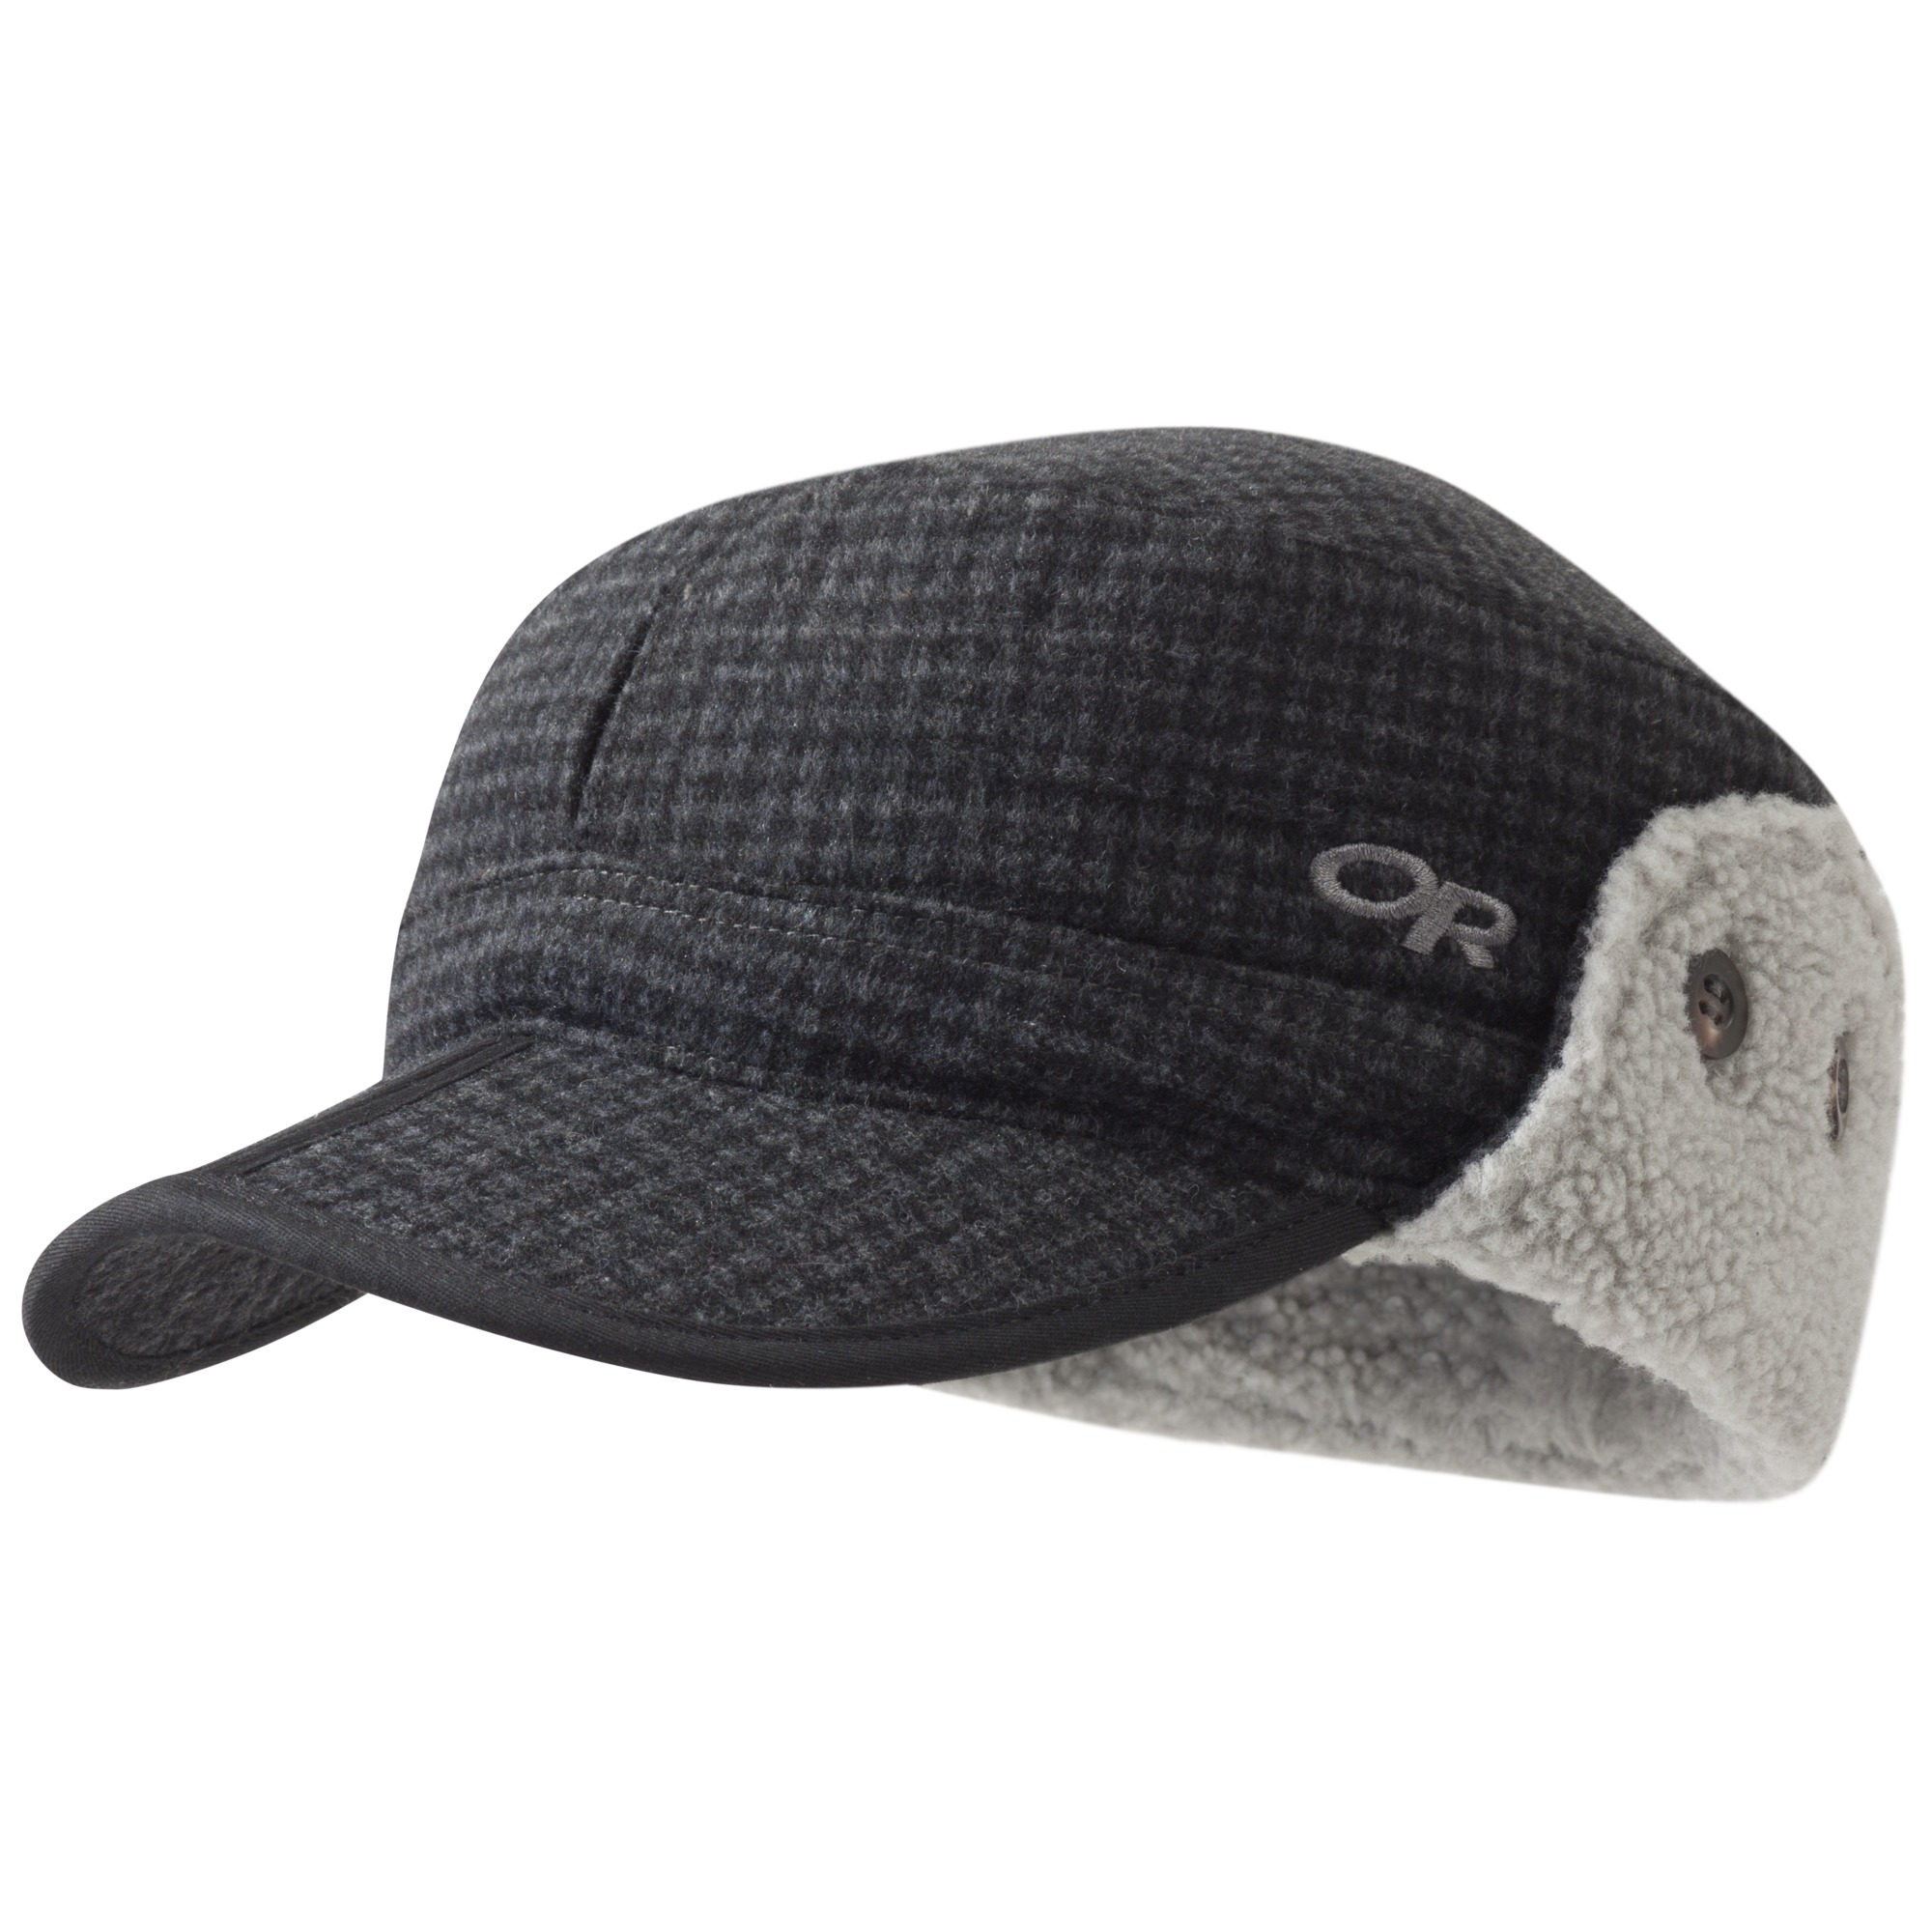 c2795684259 Yukon Cap™ - black plaid